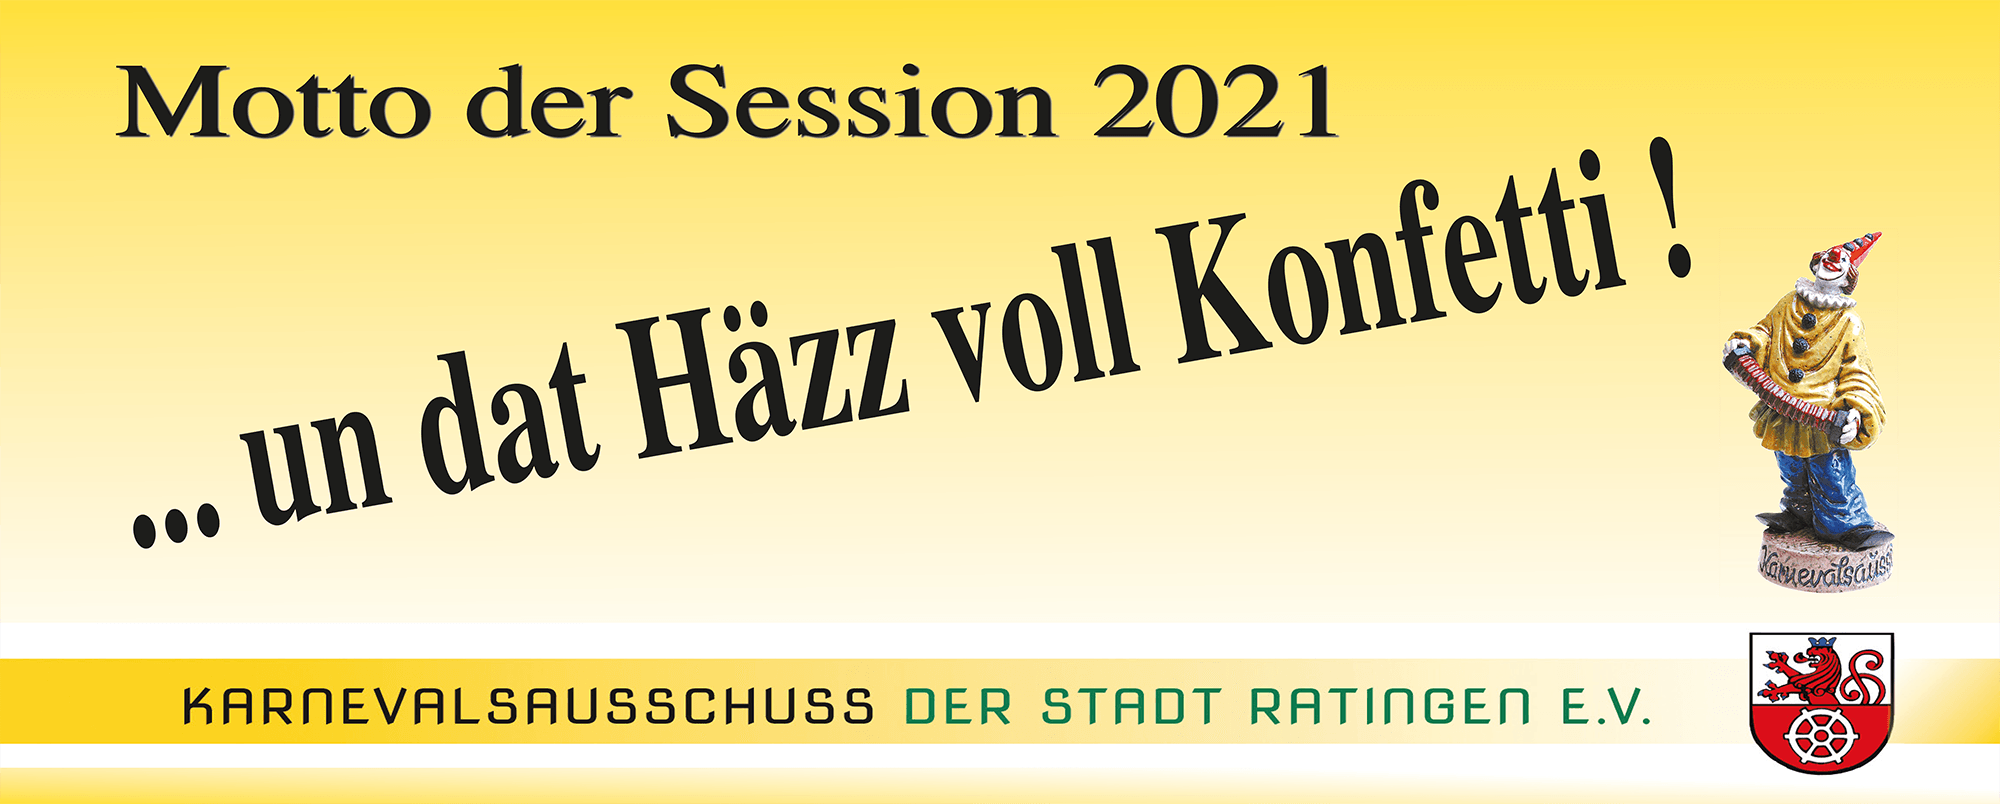 Motto der Session 2021